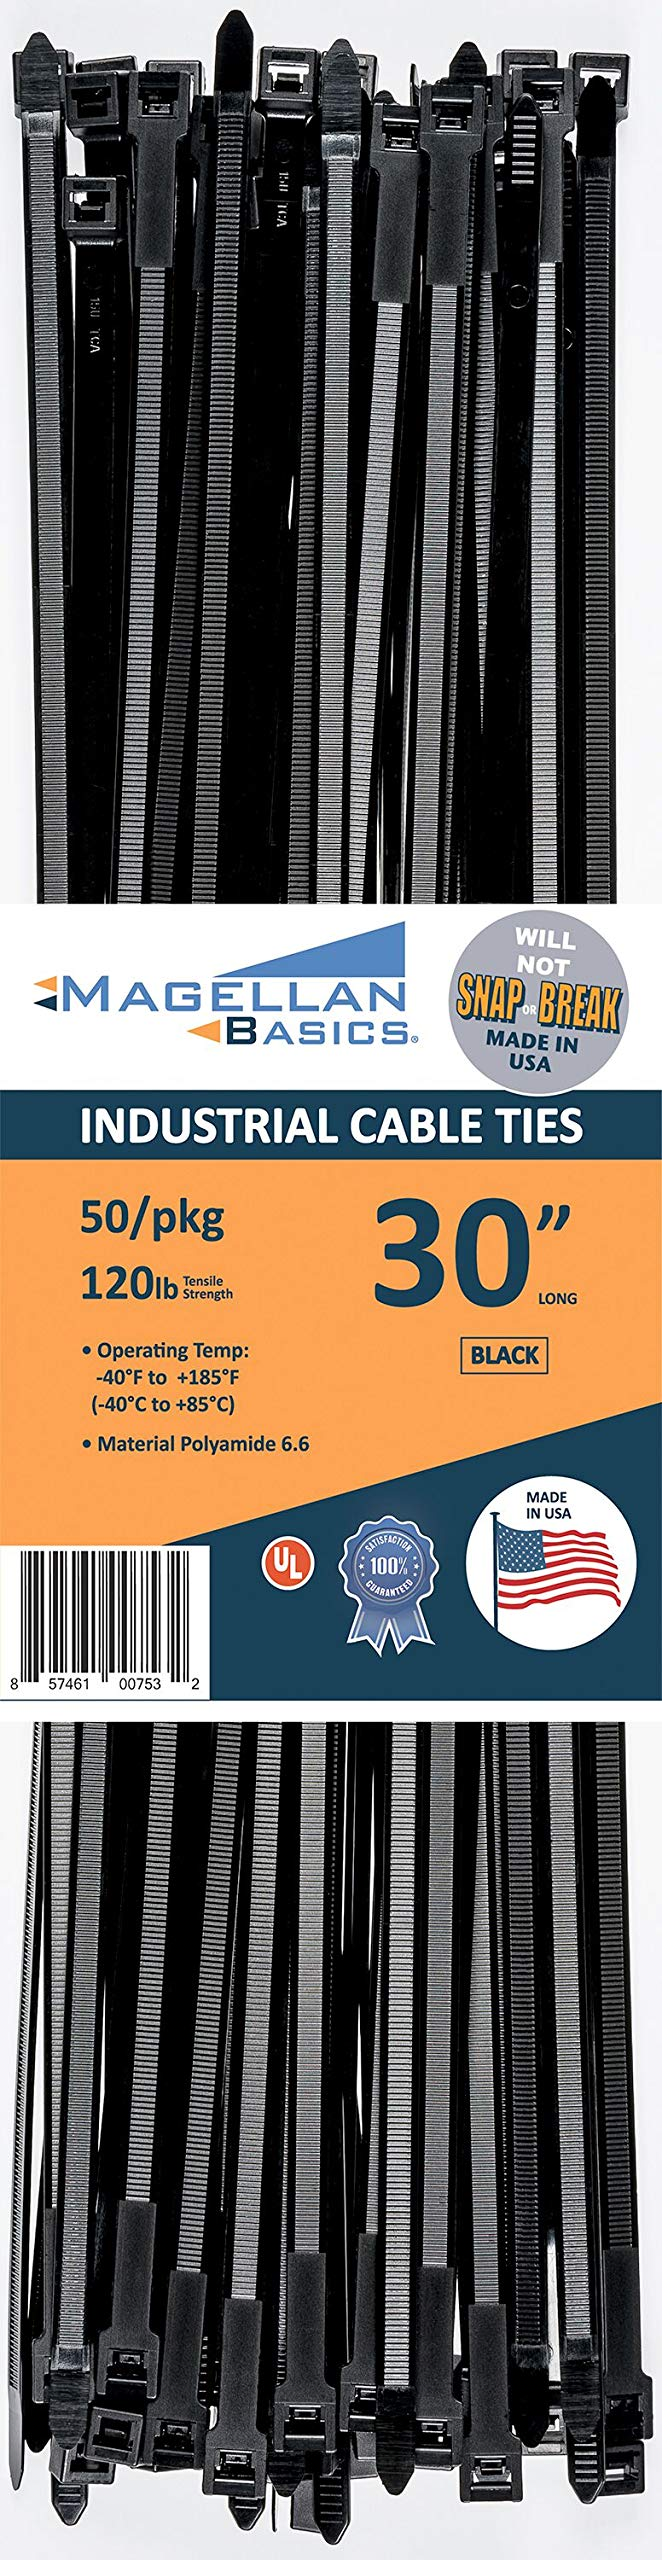 50 Pack Cable Zip Ties Heavy Duty Made in The USA 30 inch, Black